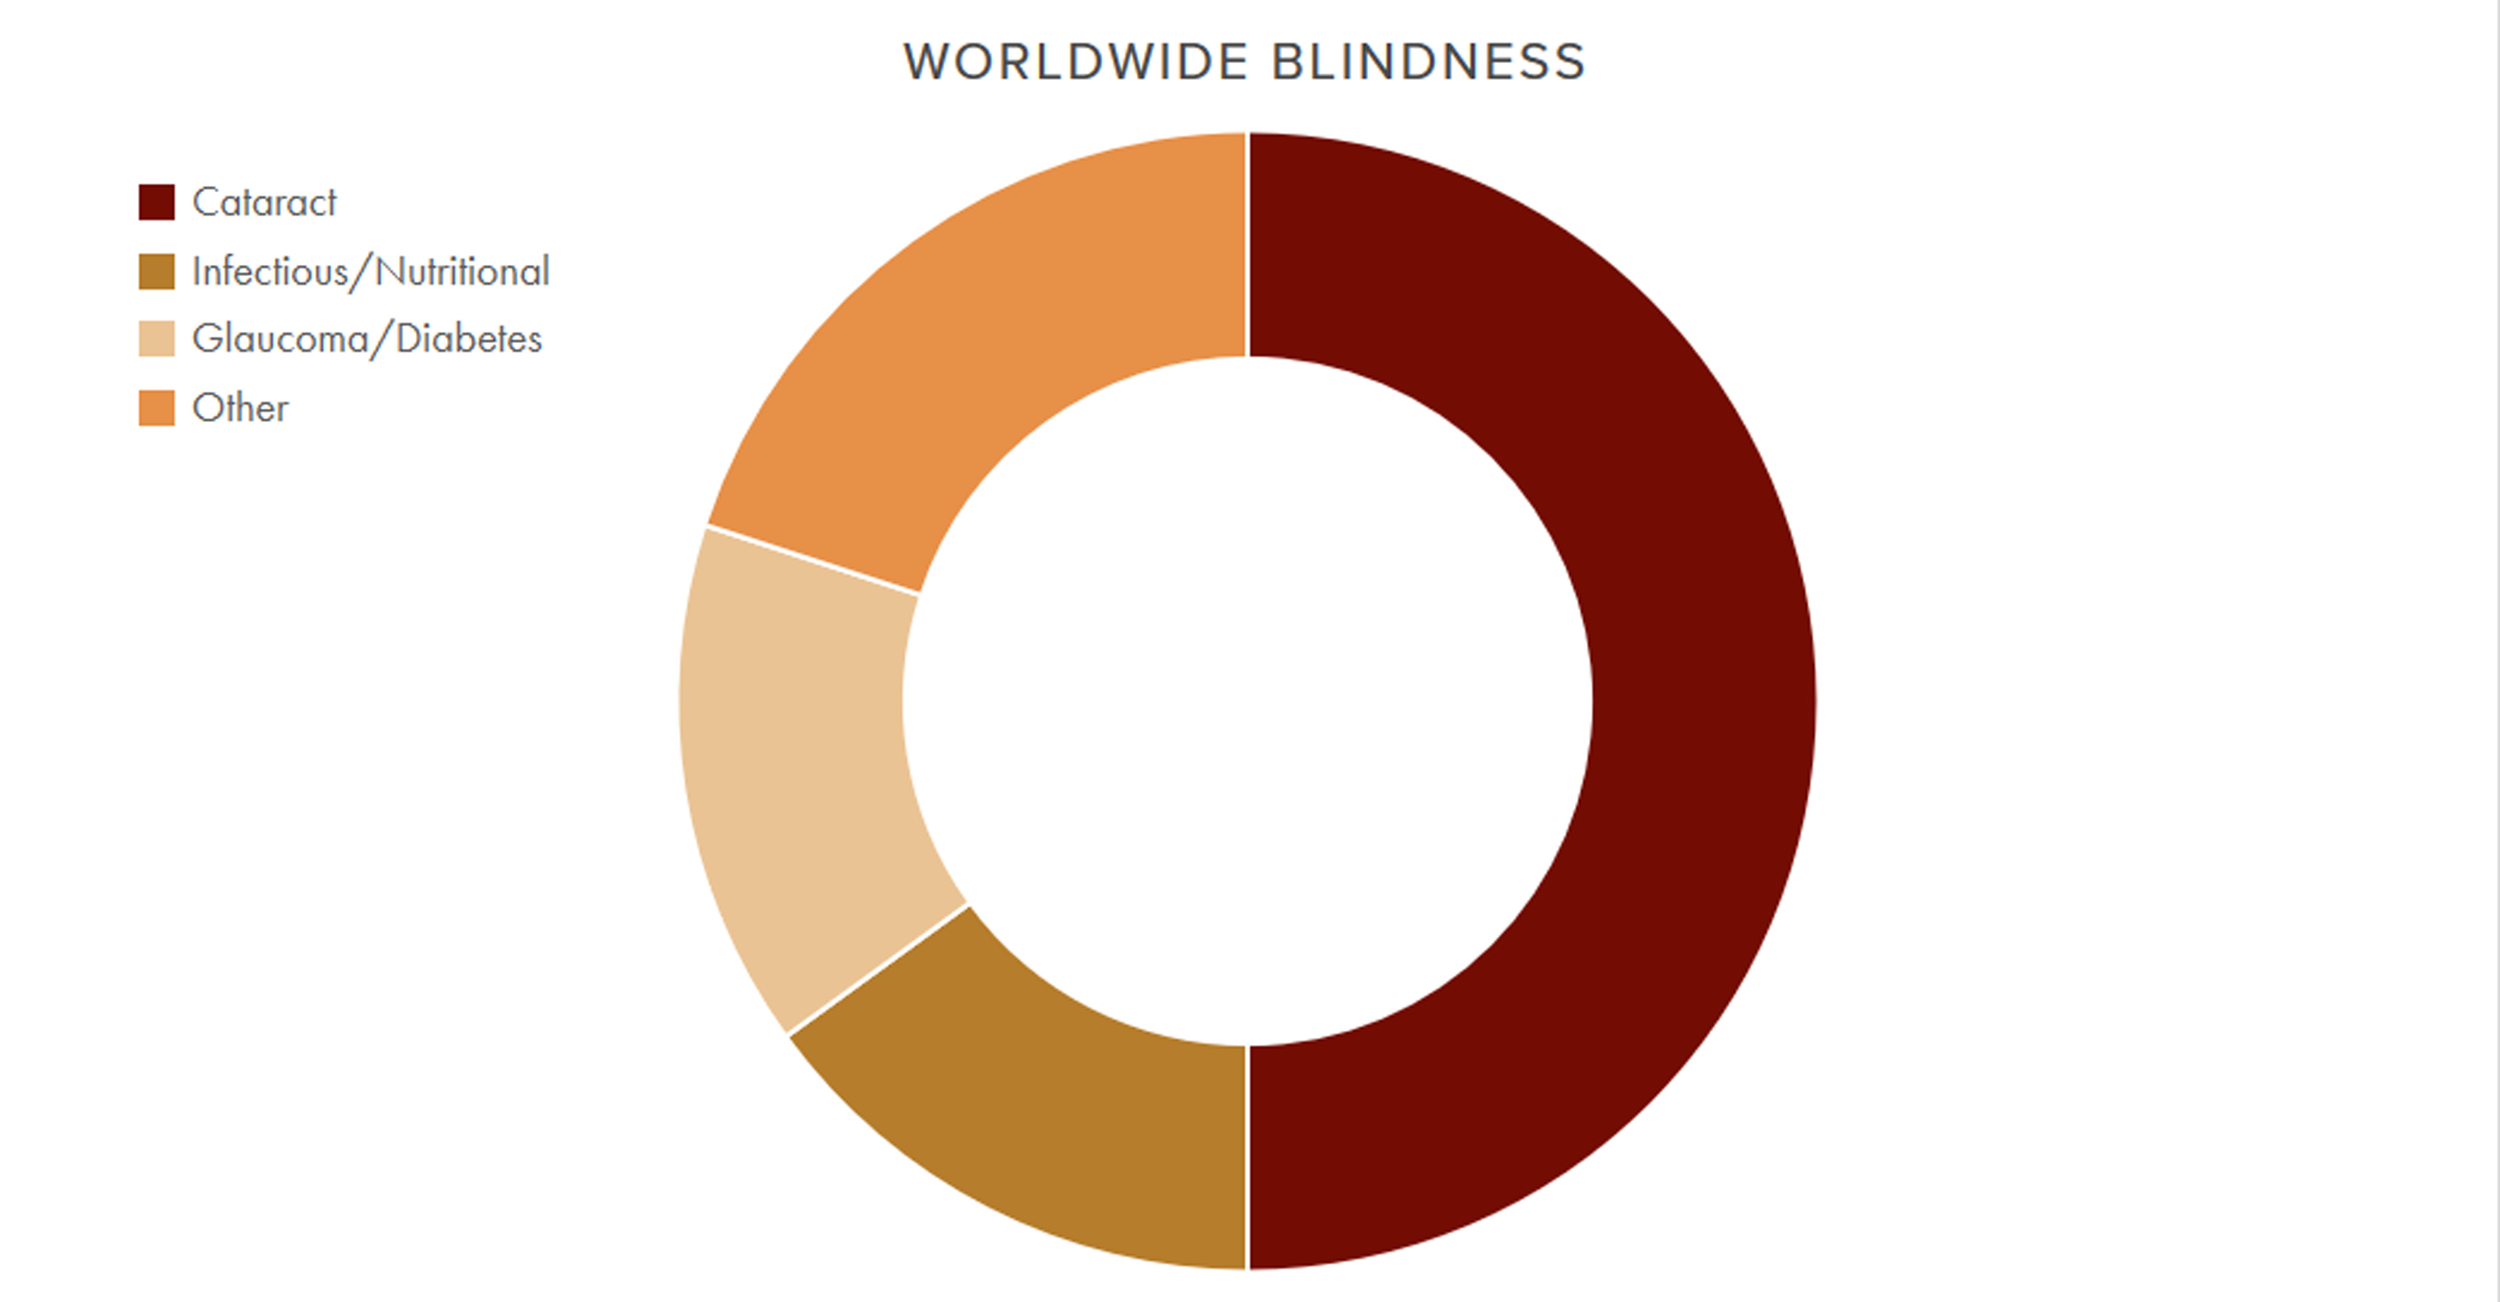 About half of all blindness is due to cataract – a clouding of the eye lens.